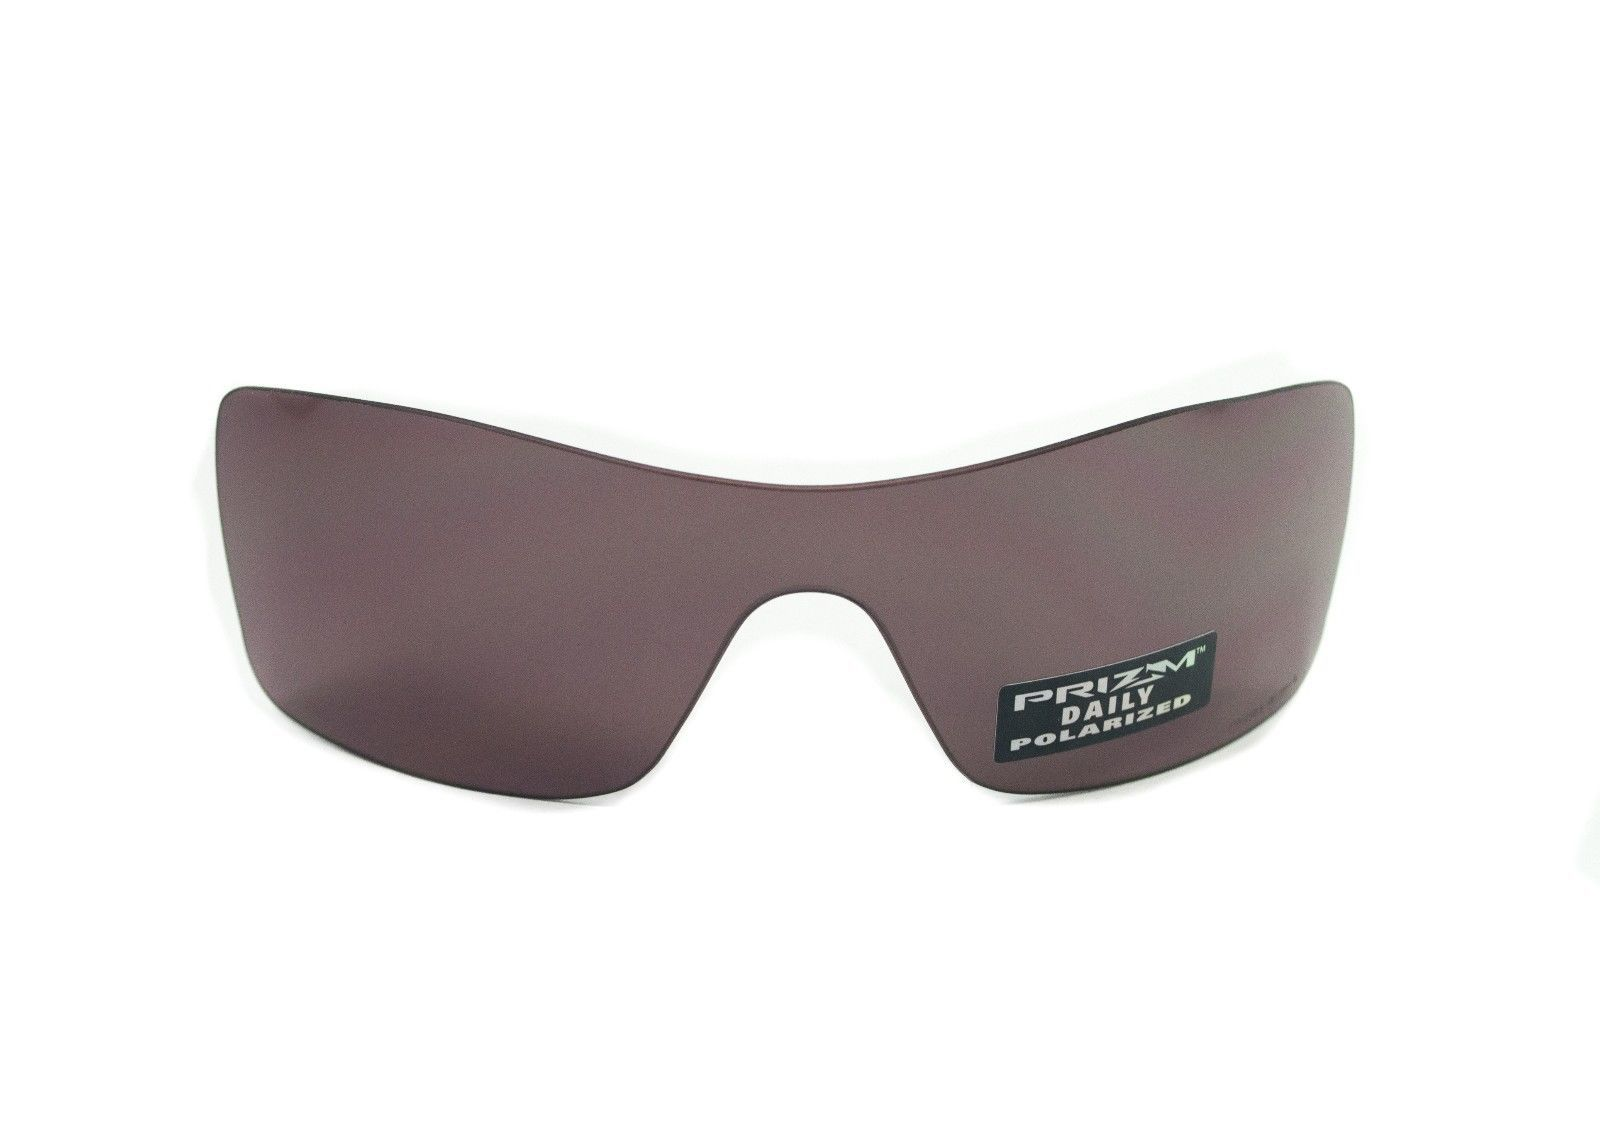 b20f2c39892 Sunglass Lens Replacements 179194  Oakley Batwolf Prizm Daily Polarized  Replacement Lens  Authentic  Rare